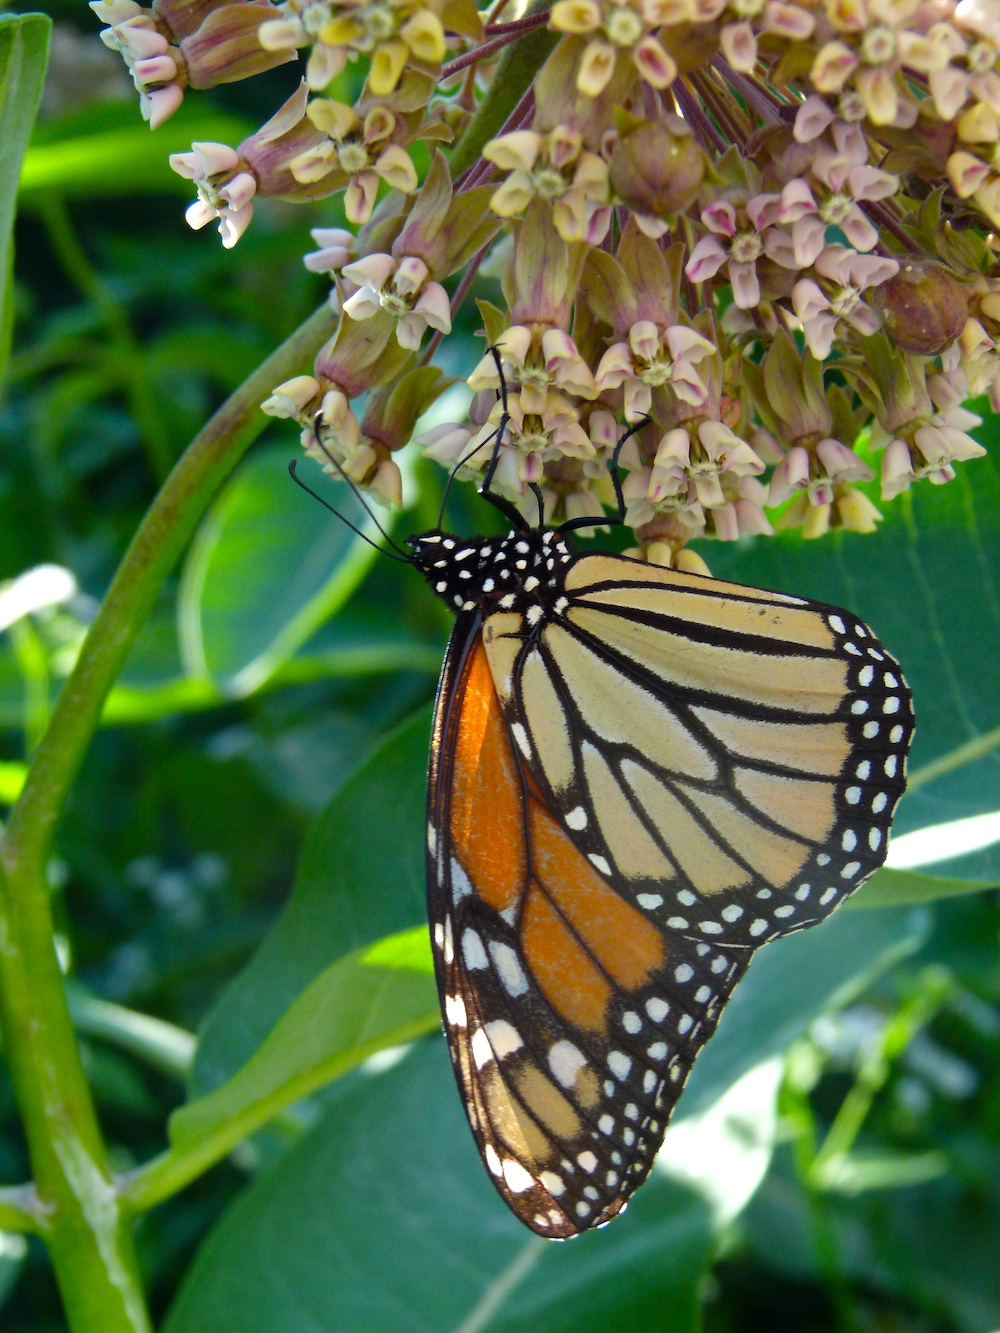 An orange, yellow, black, and white monarch butterfly nectars on a cluster of pinkish, white milkweed flowers.